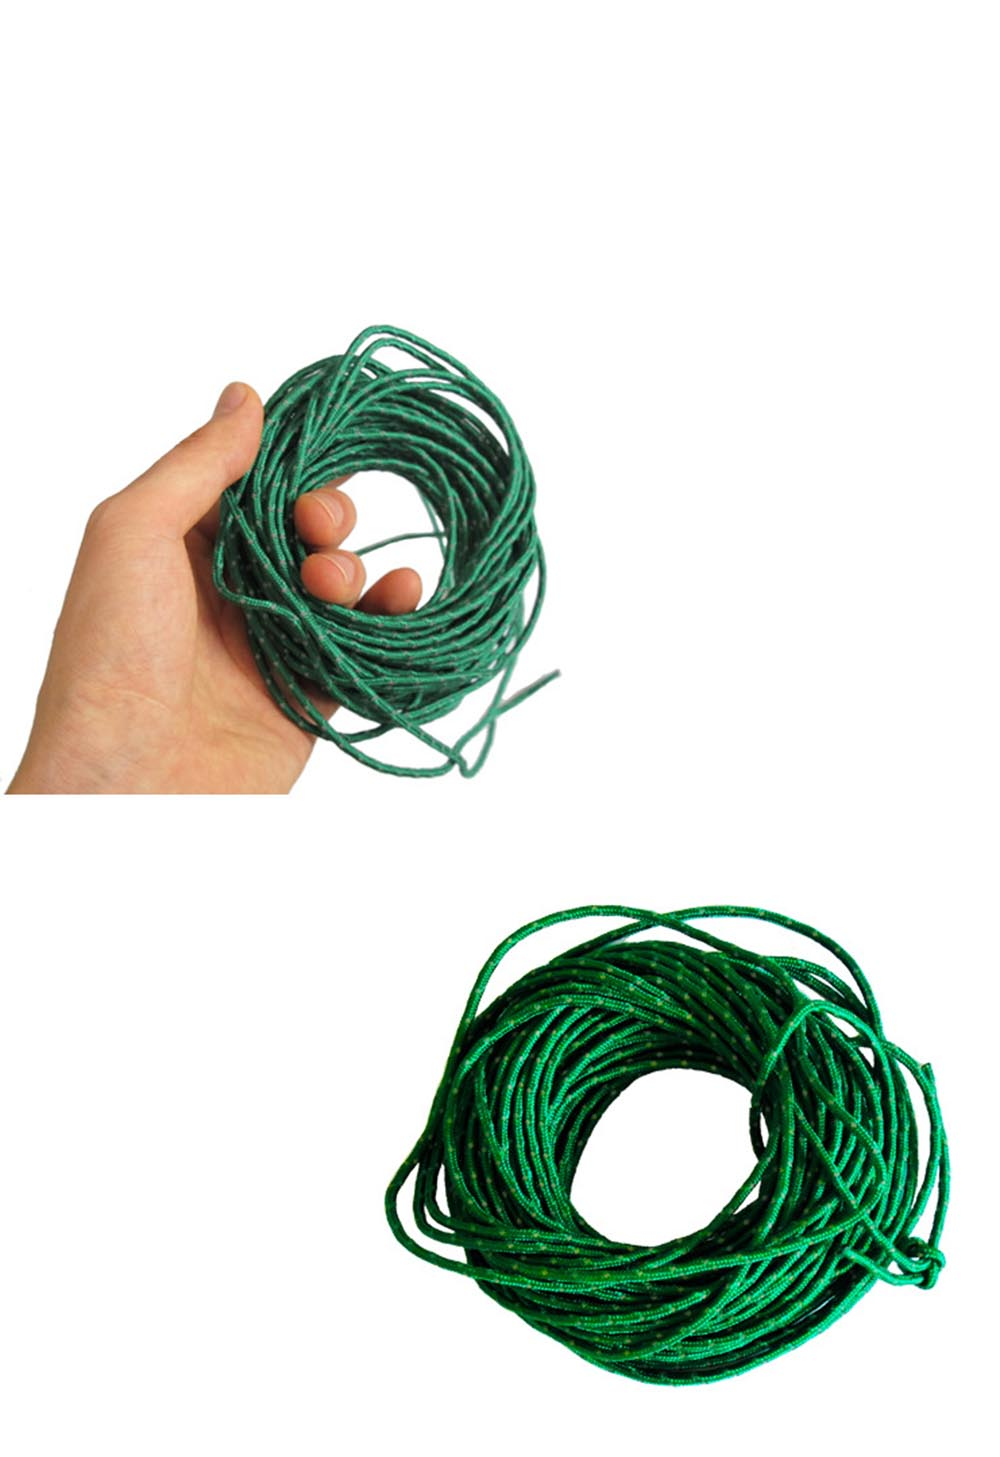 15m Luminous Outdoor C&ing Tent Awning Reflective Rope Runners Guy Reflective Line Cord Paracord Parachute 50 feet Equipment-in Tent Accessories from ...  sc 1 st  AliExpress.com & 15m Luminous Outdoor Camping Tent Awning Reflective Rope Runners ...